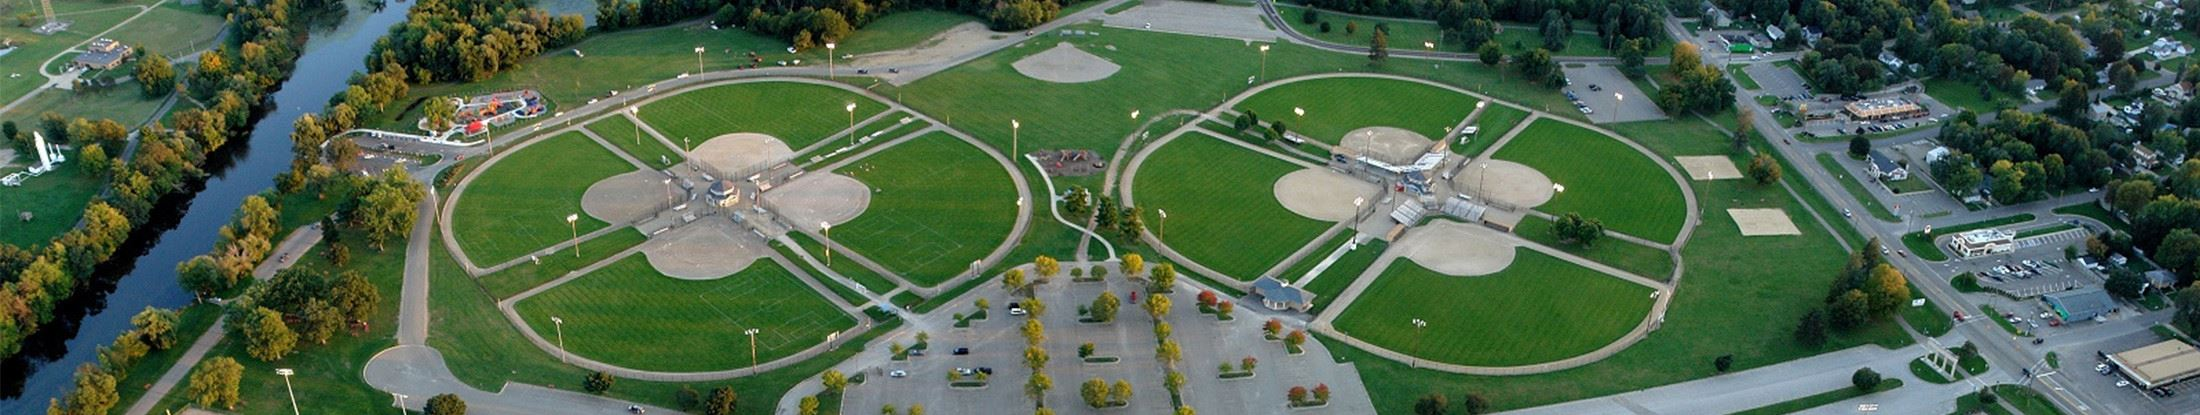 Aerial view of Bailey Park